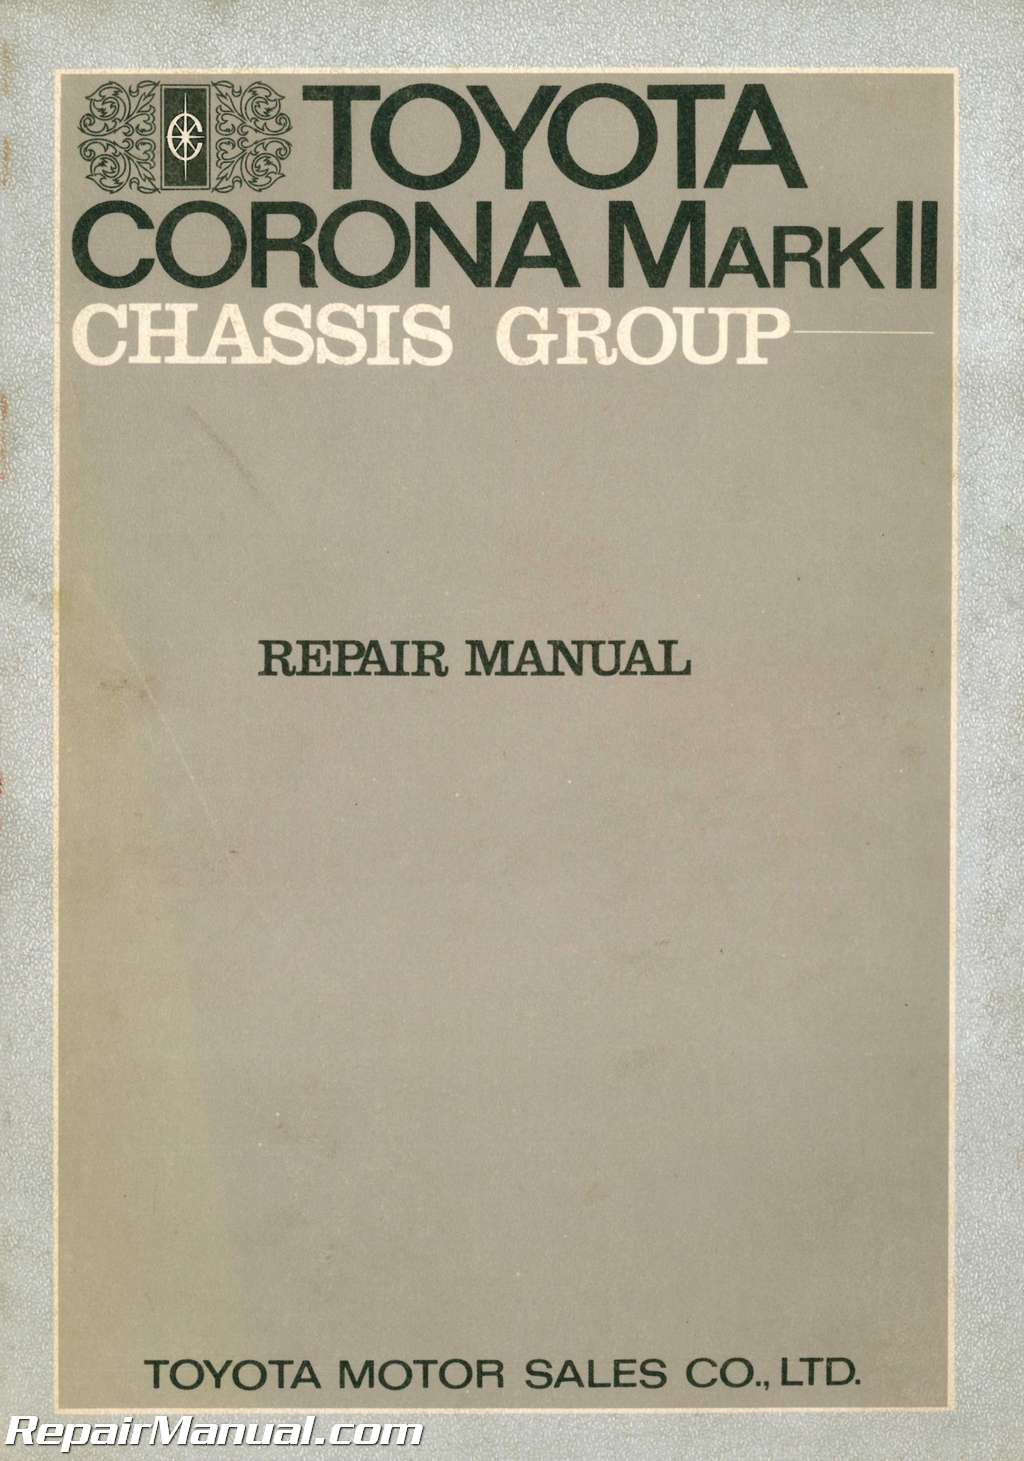 used 1971 toyota corona mark ii chassis group repair manual service manual toyota corolla 2003 manual service toyota corolla 2007